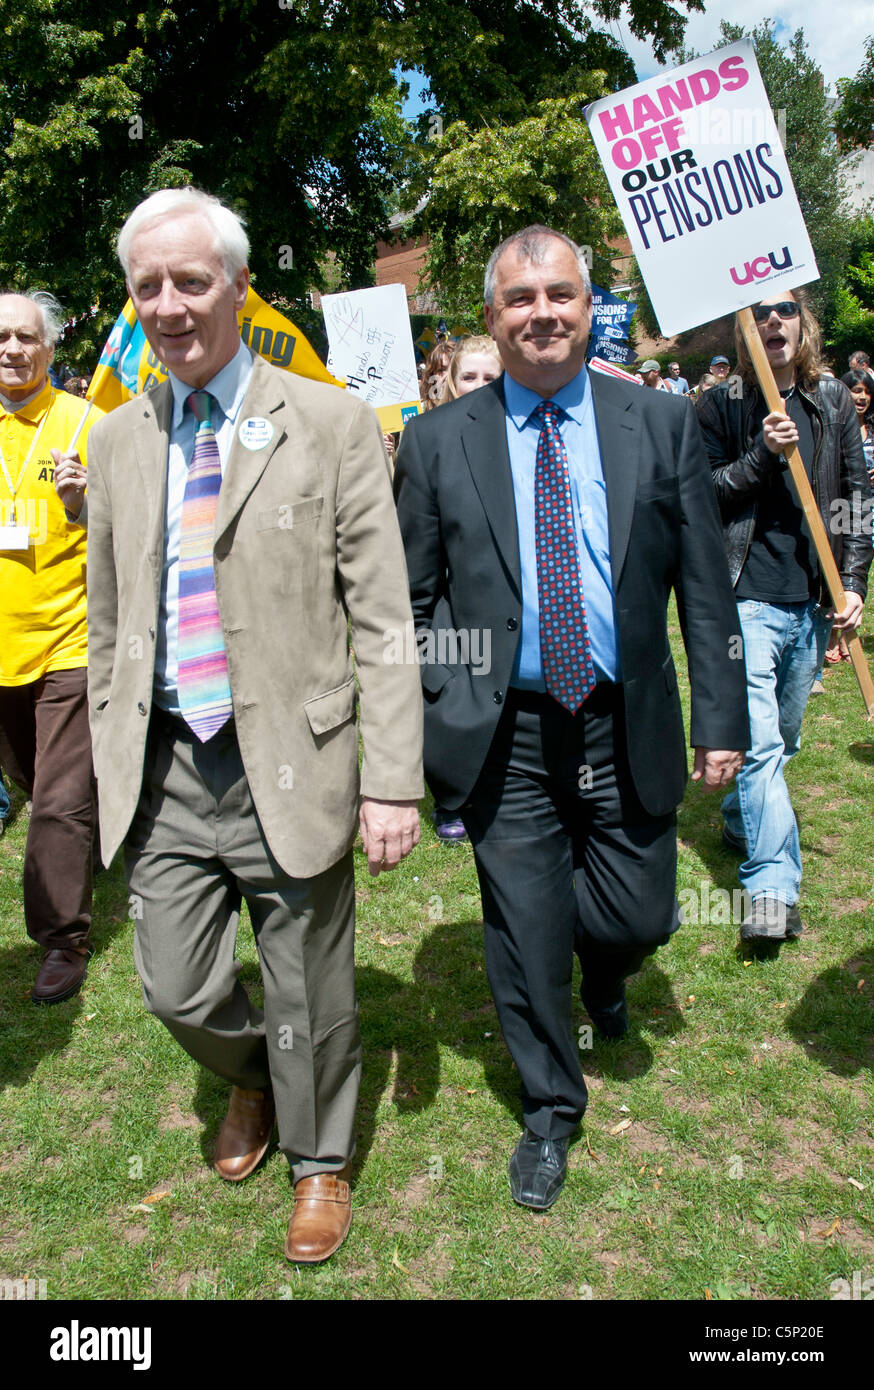 Brendan Barber, General Secretary of the United Kingdom's Trades Union Congress (TUC), walks with the marchers - Stock Image